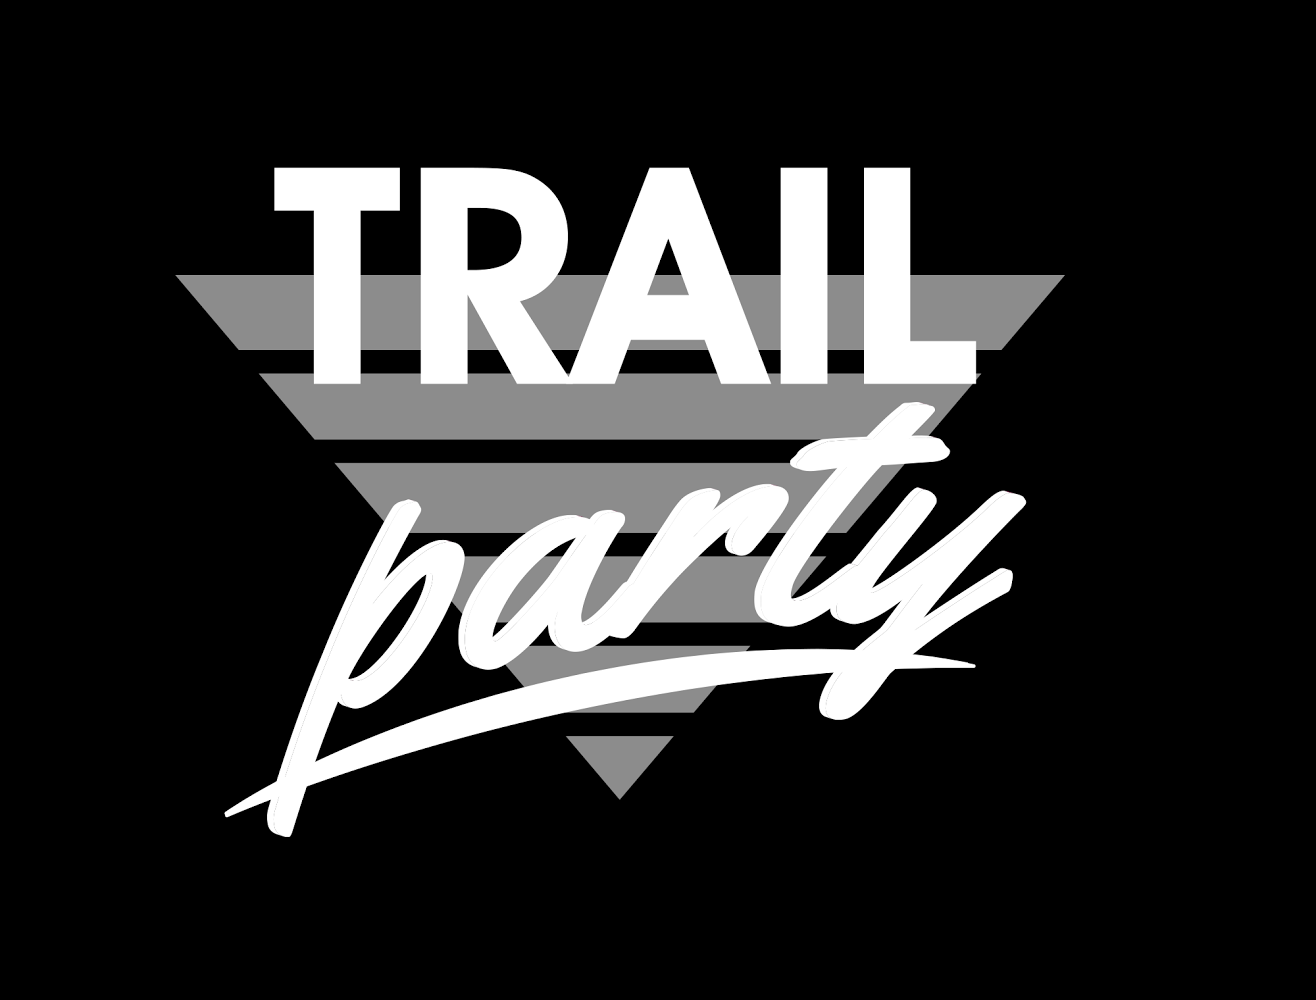 Trail Party blk:wht png.PNG